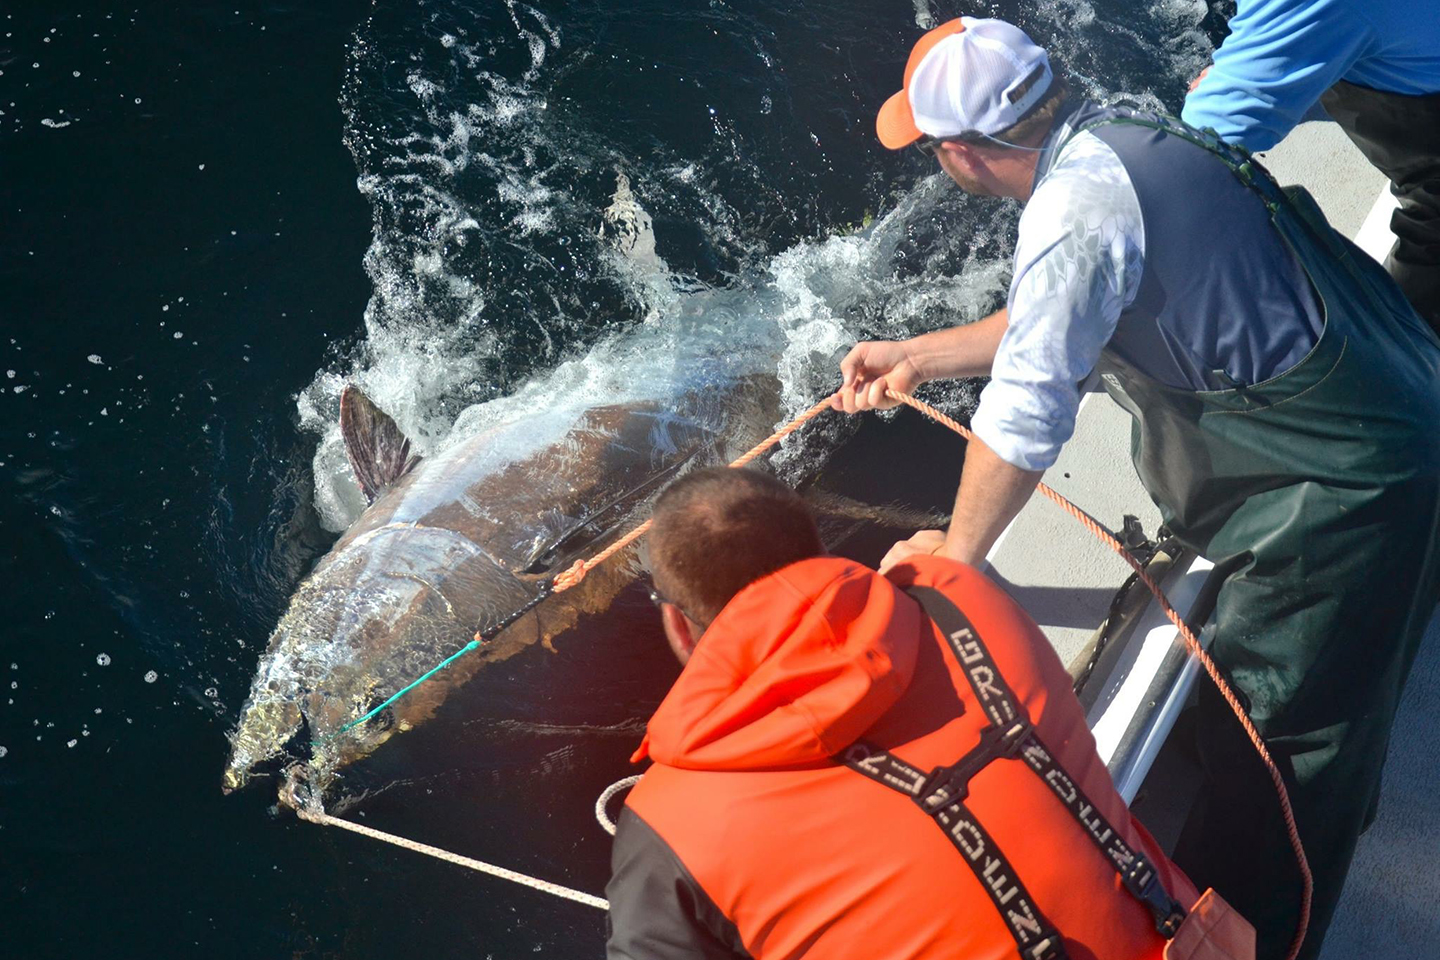 Two fishermen next to a Giant Bluefin Tuna that they are about to release